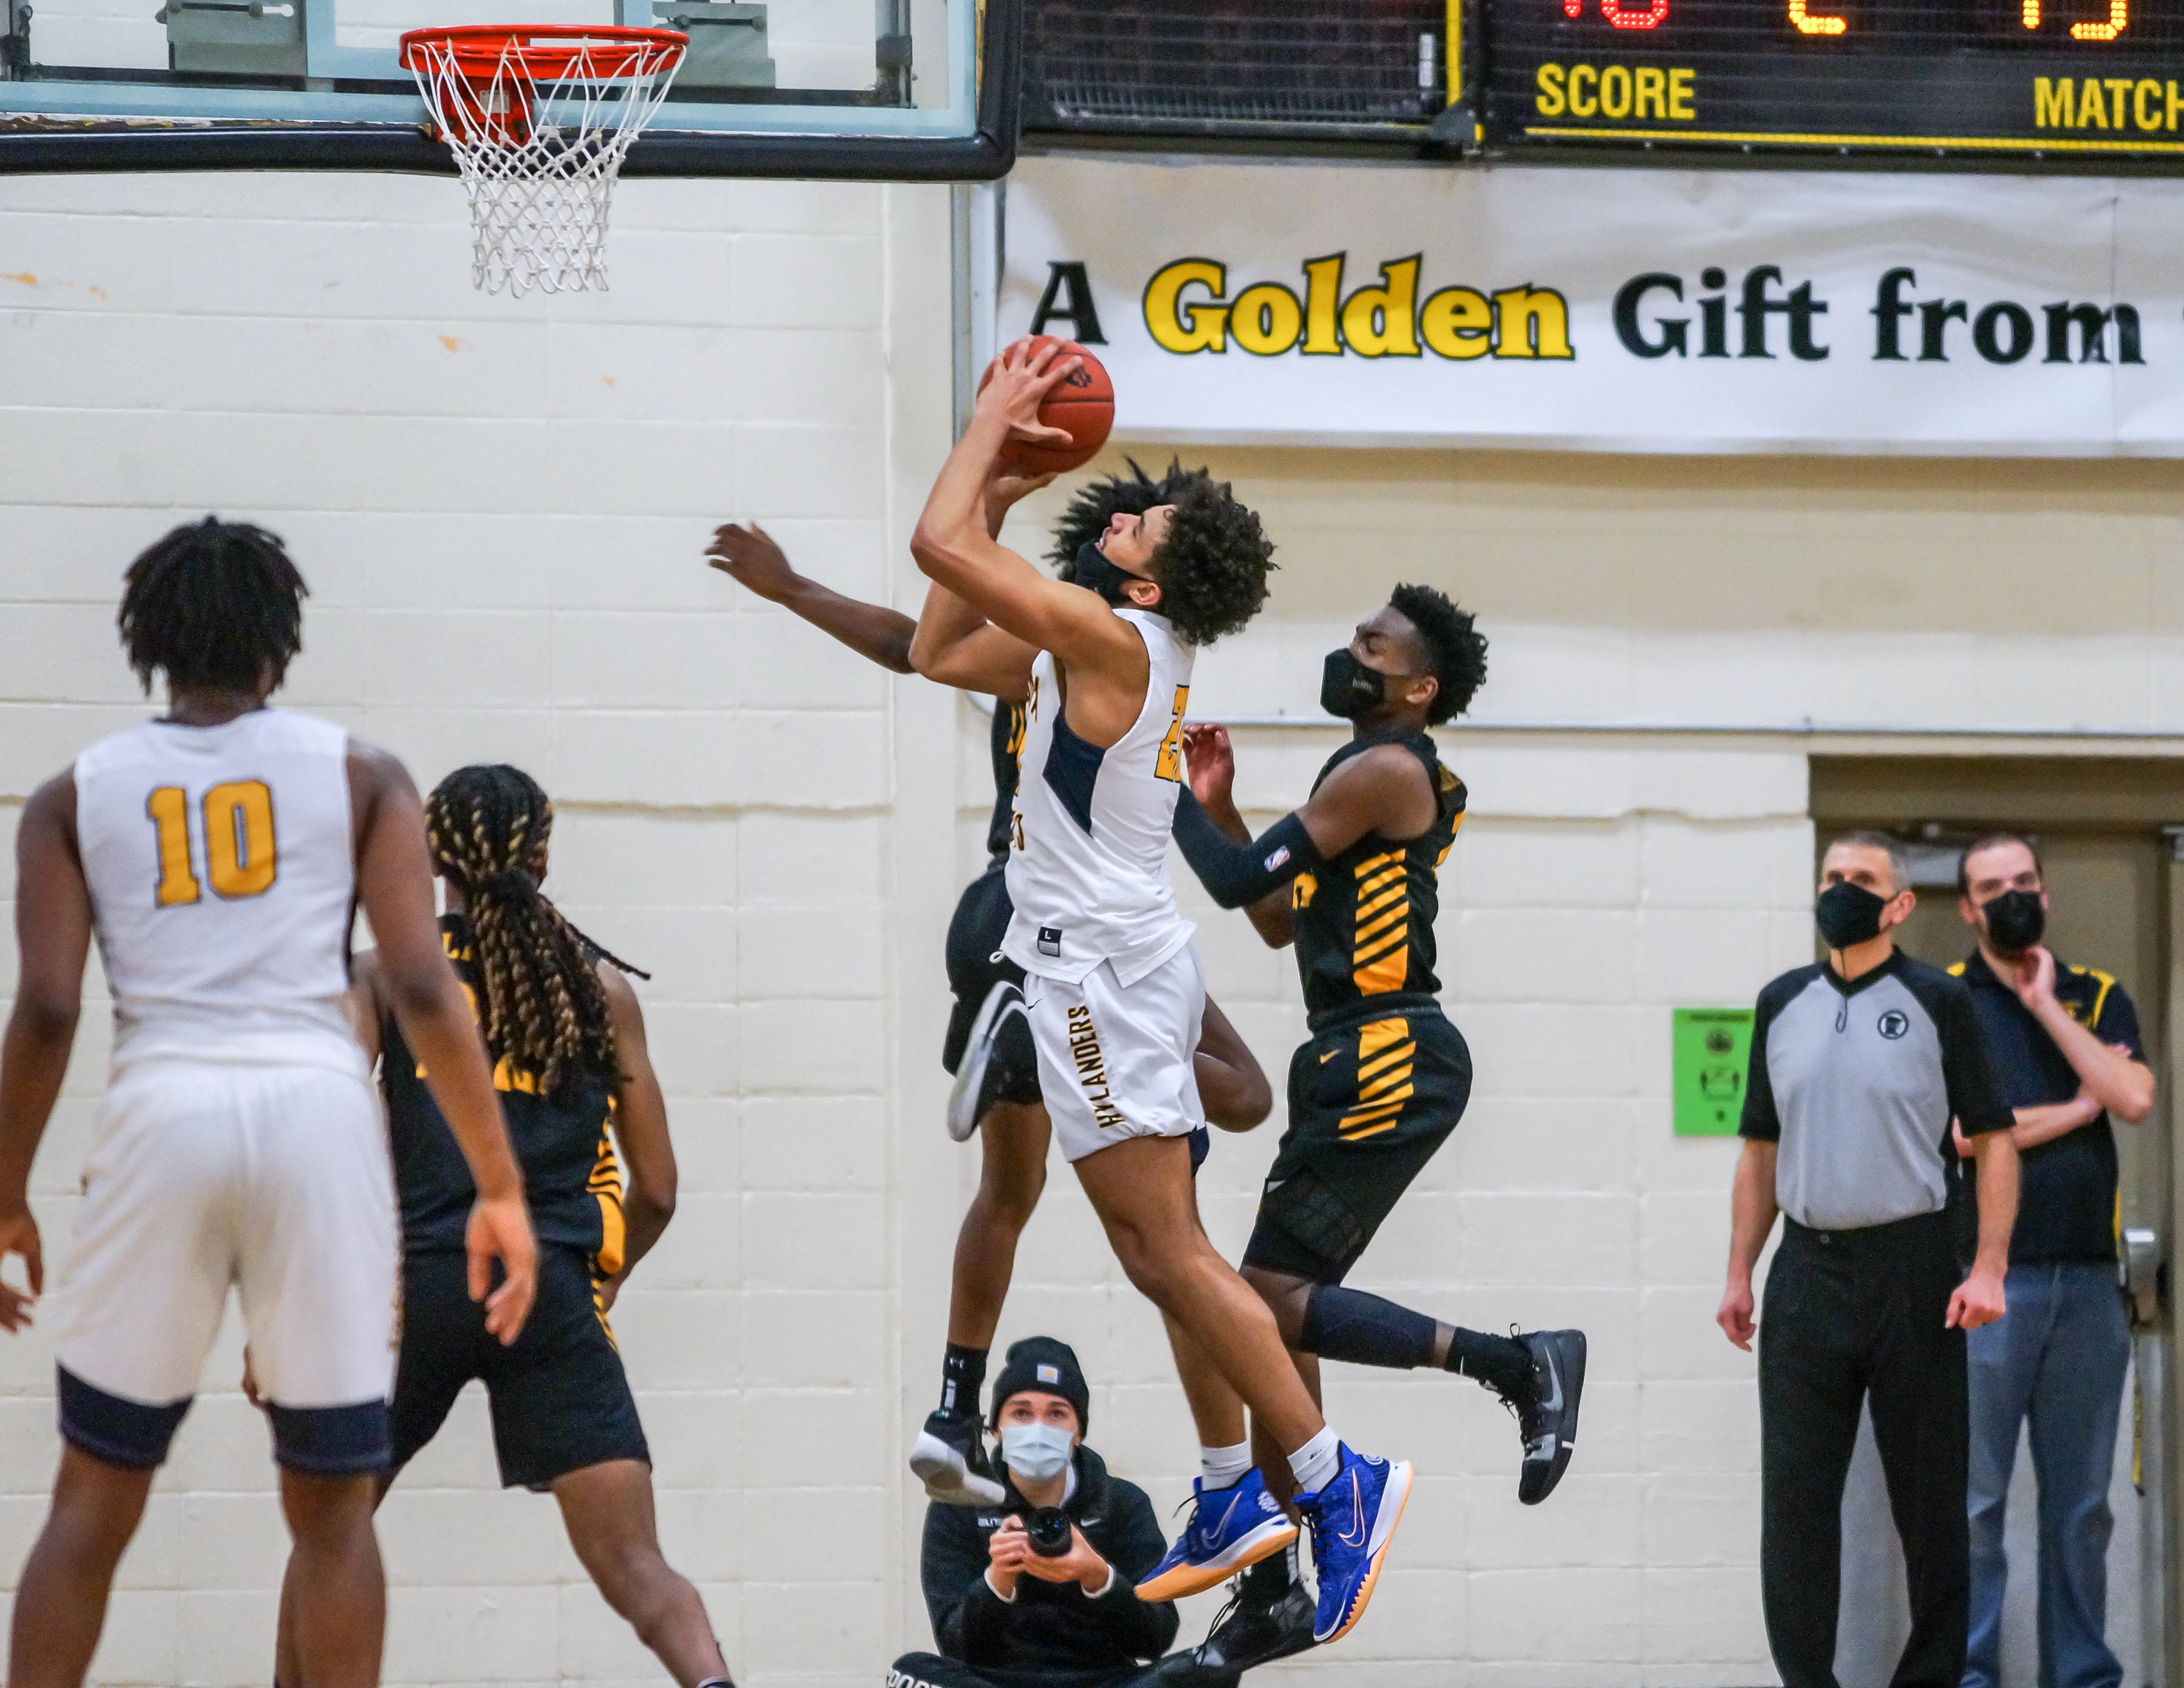 Columbia Heights' Donnavin Hinsz (center) makes the game winning basket while drawing a foul, with less than 5 seconds remaining to give the visiting Hylanders a 62-60 victory over DeLaSalle Feb 23. Photo by Korey McDermott, SportsEngine